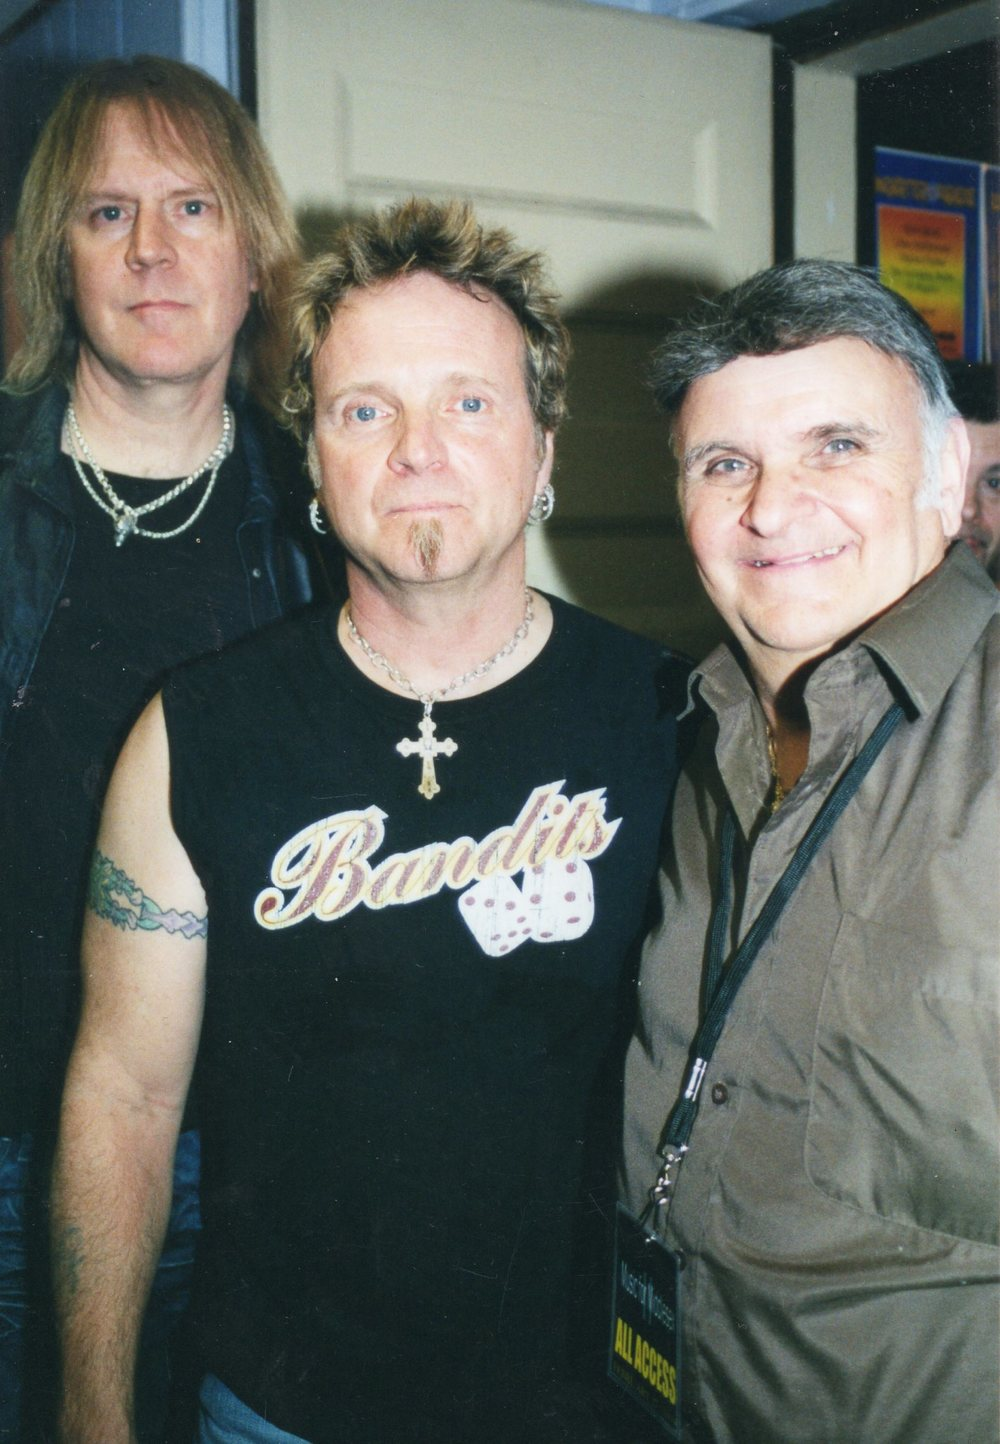 Tom Hamilton & Joey Kramer (Aerosmith)